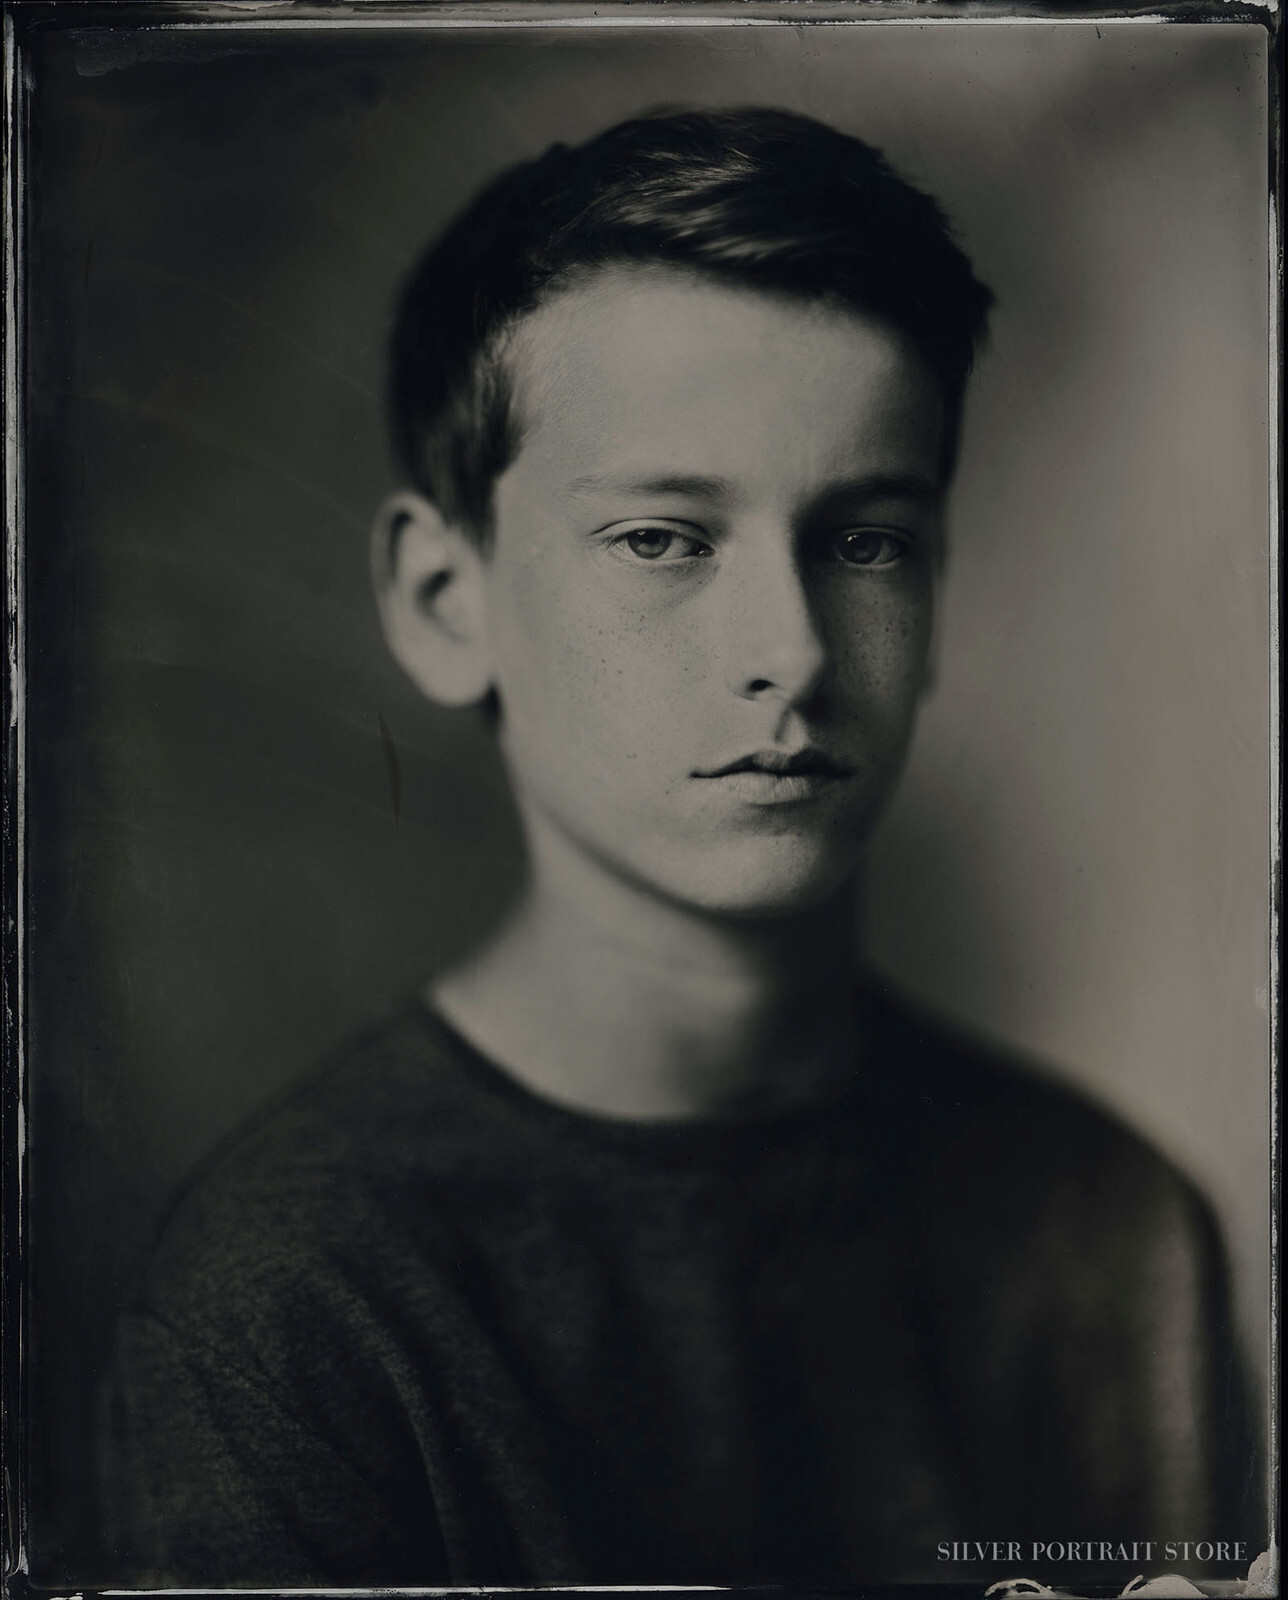 Finn-Silver Portrait Store-Wet plate collodion-Tintype 20 x 25 cm.